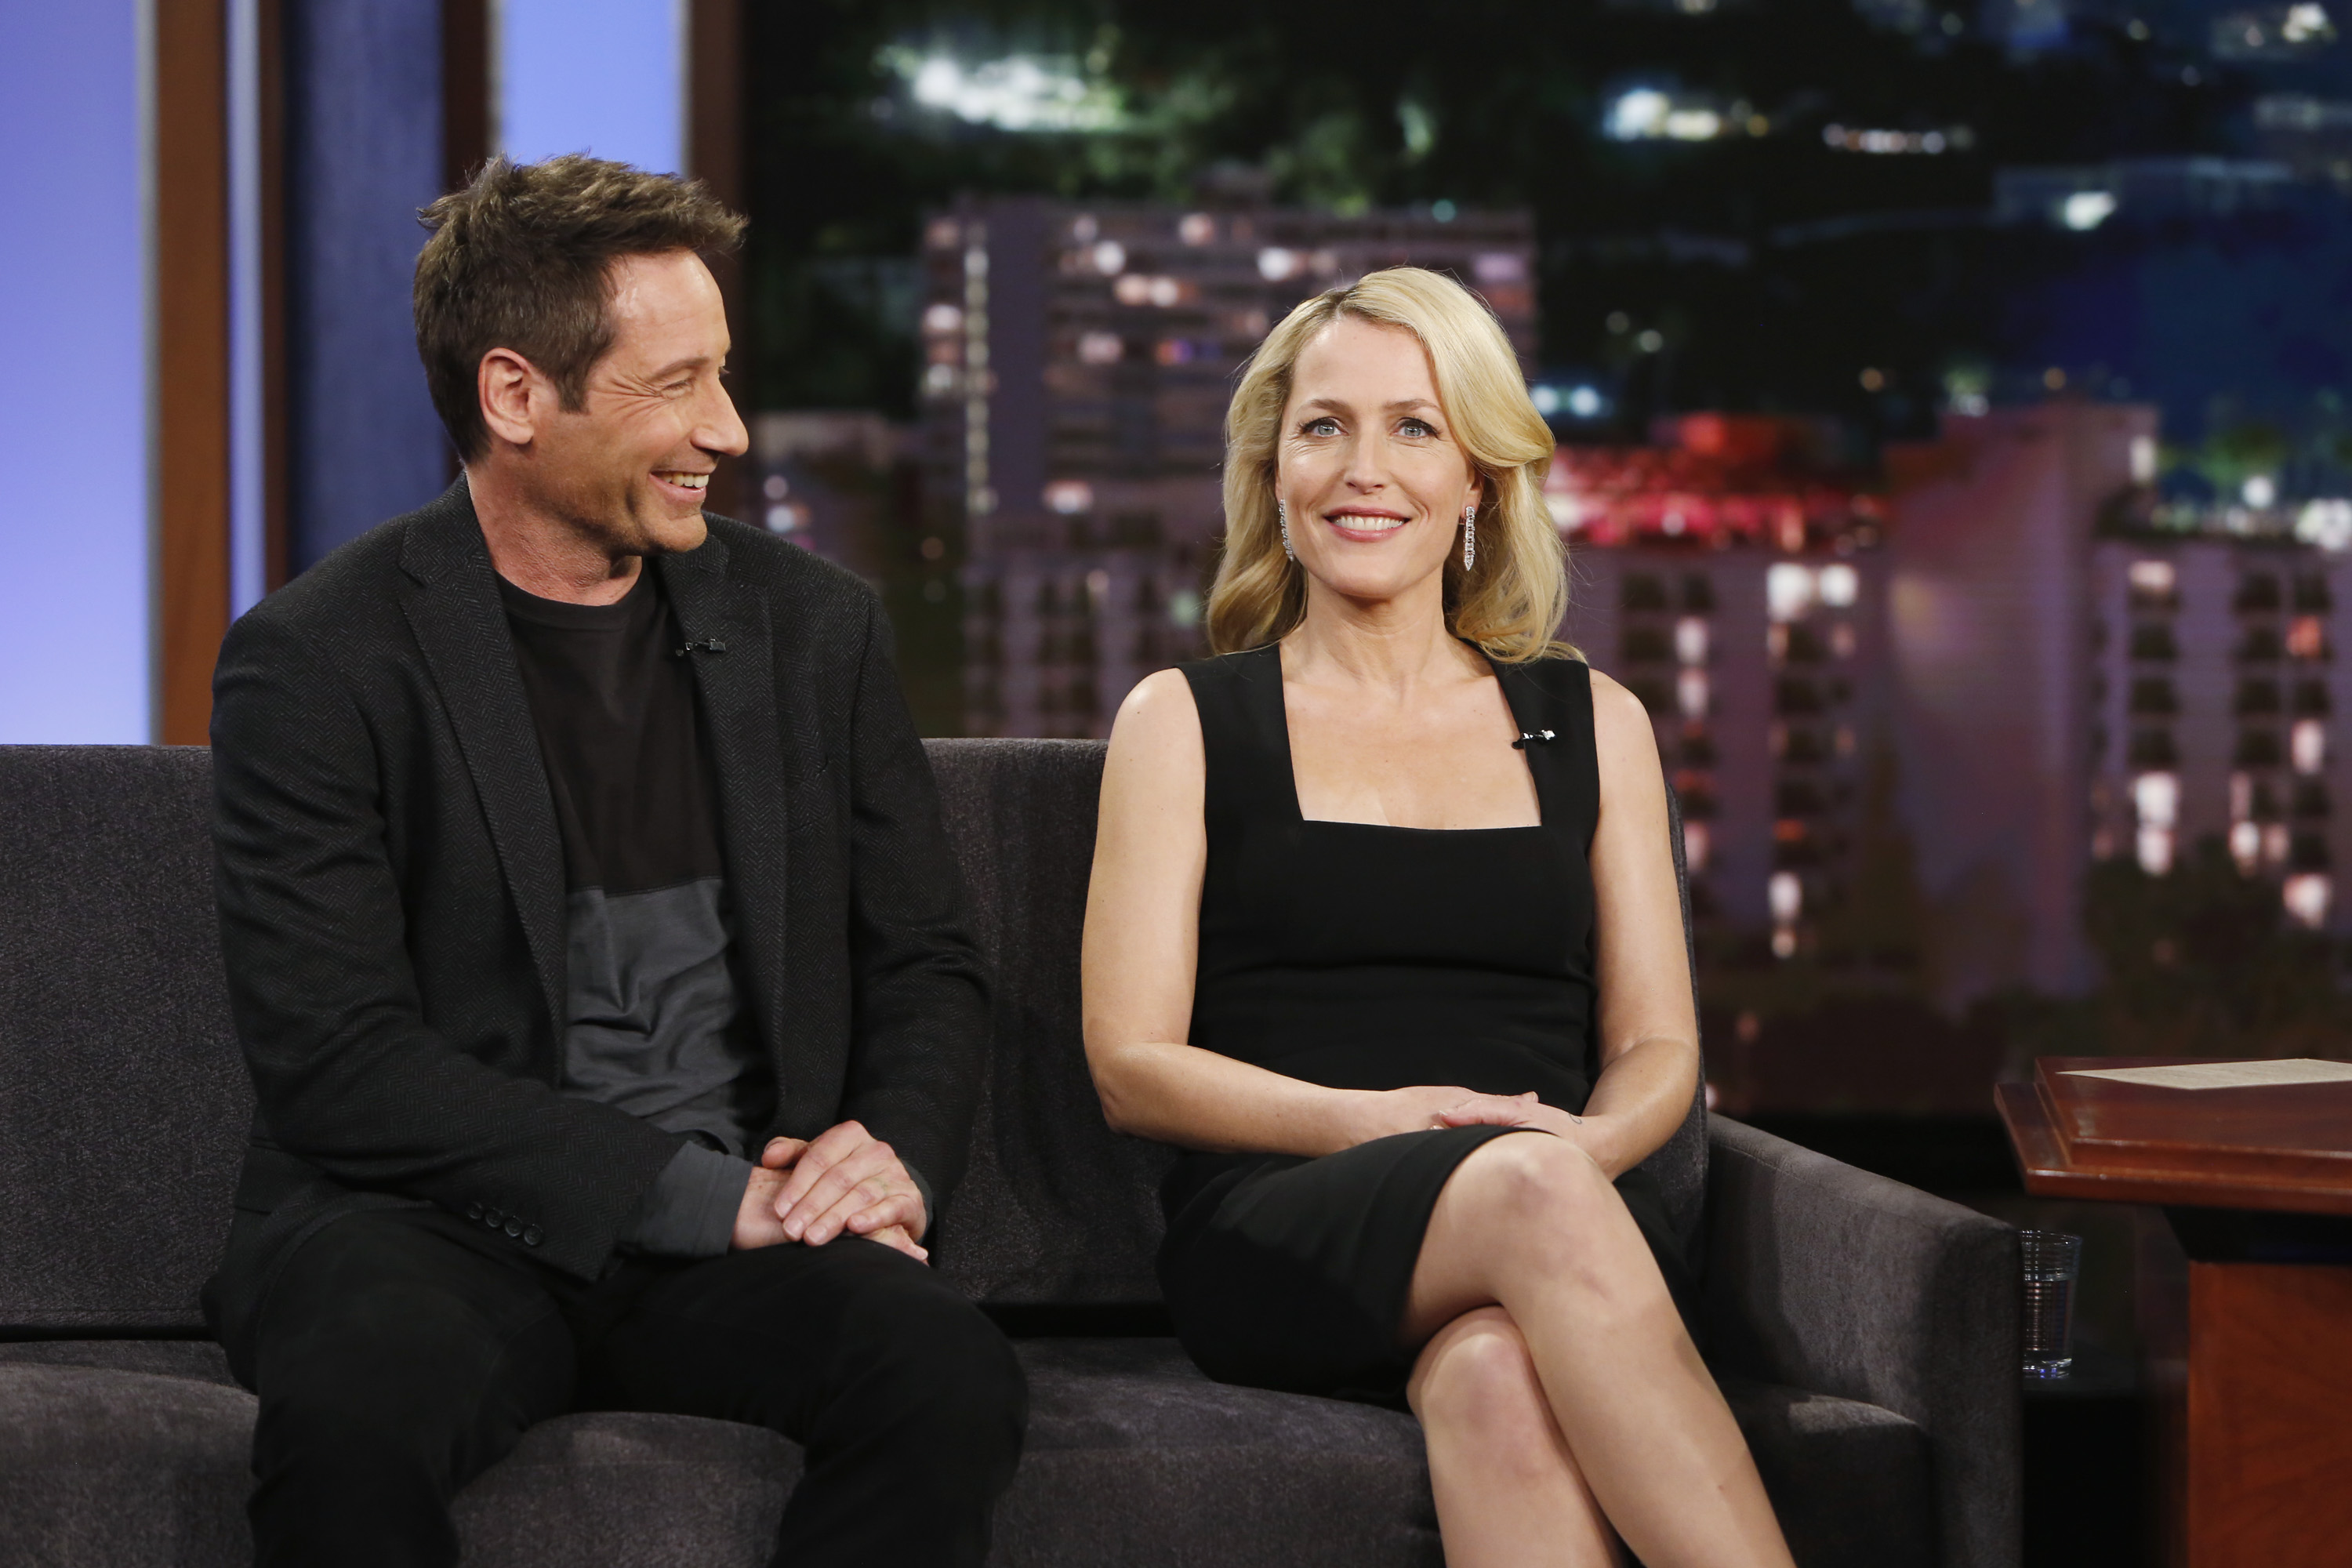 David Duchovny and Gillian Anderson are seen on <i>Jimmy Kimmel Live!</i> on Jan. 12, 2016 in Burbank, Calif.